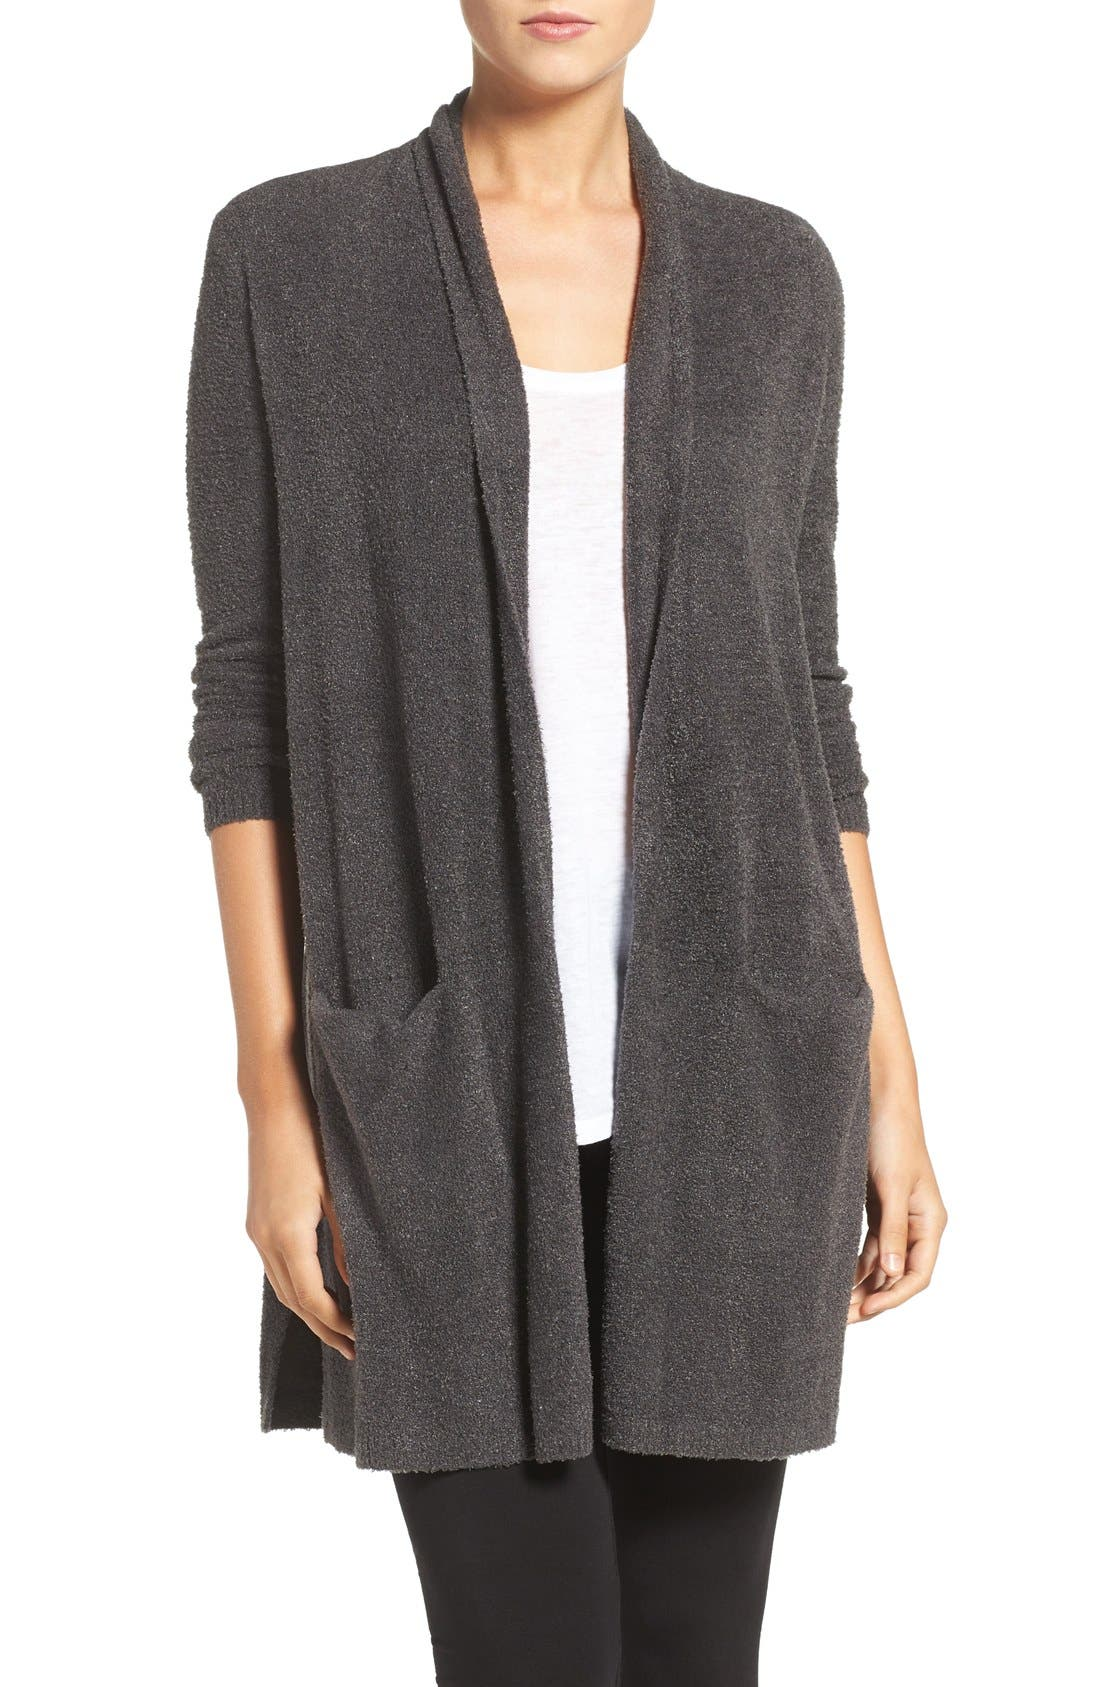 Alternate Image 1 Selected - Barefoot Dreams® CozyChic Lite® Long Essential Cardigan